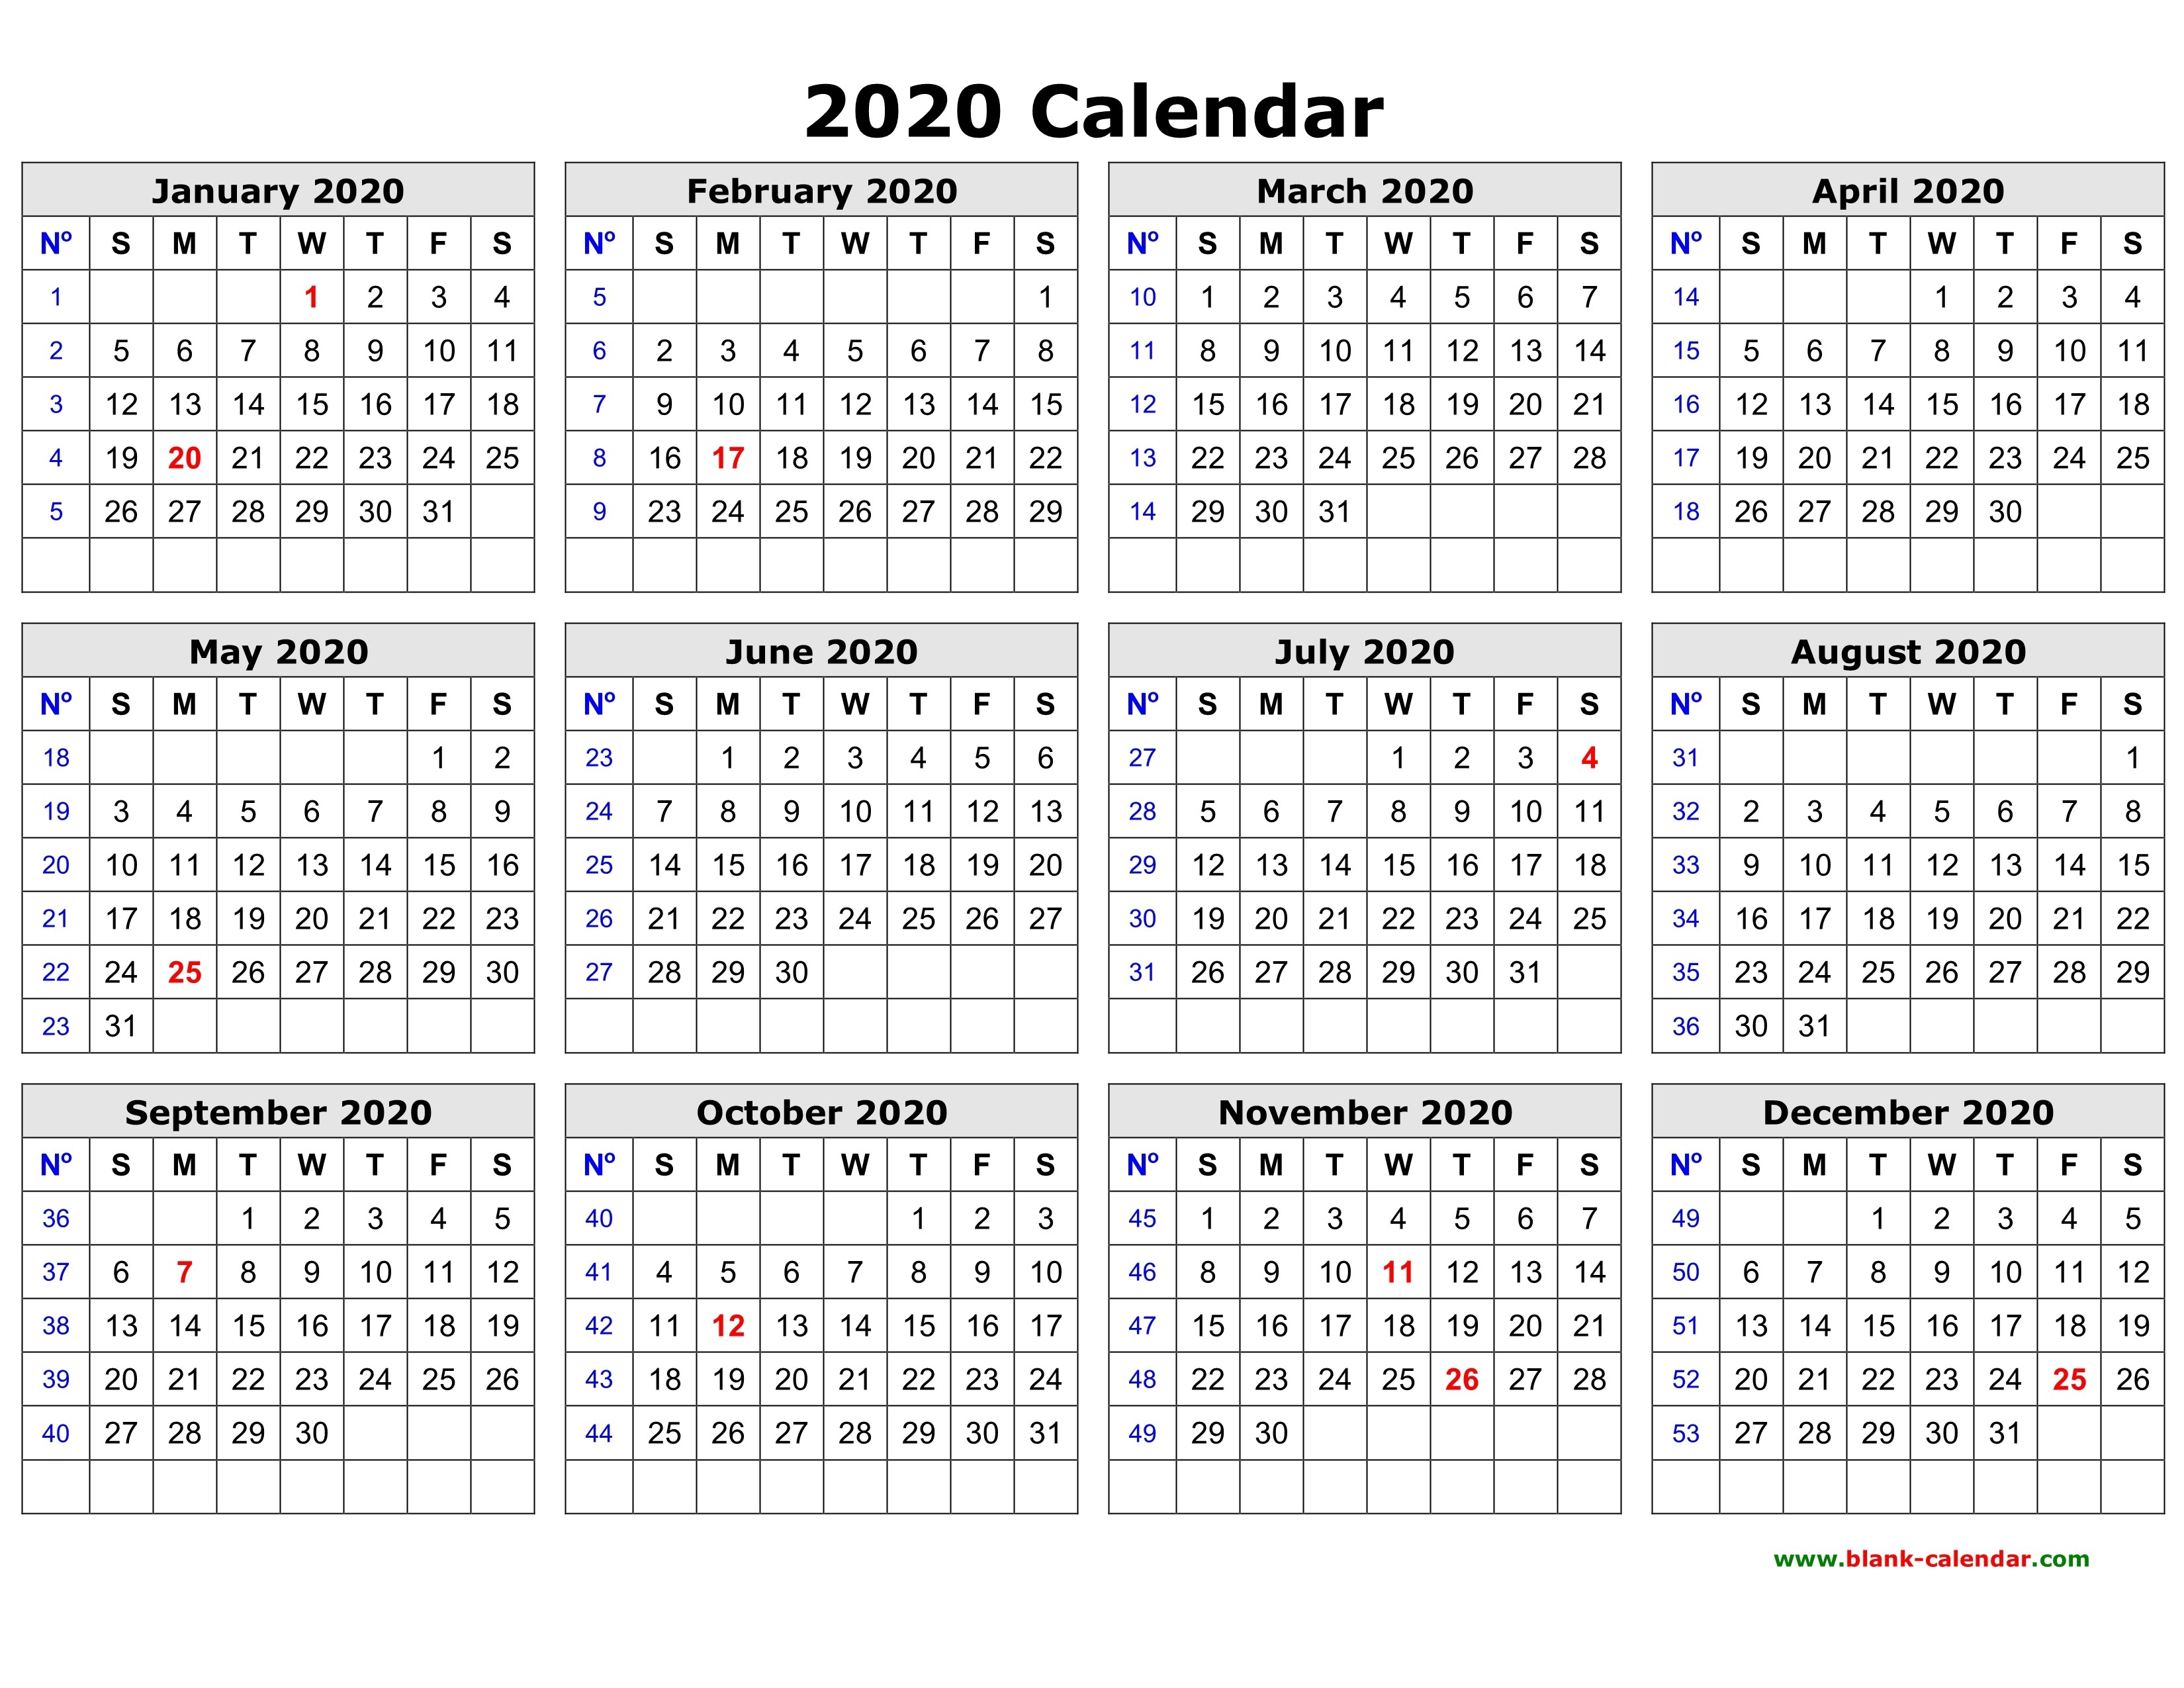 Free Download Printable Calendar 2020 In One Page, Clean Design.-12 Month Blank Calendar 2020 Printable